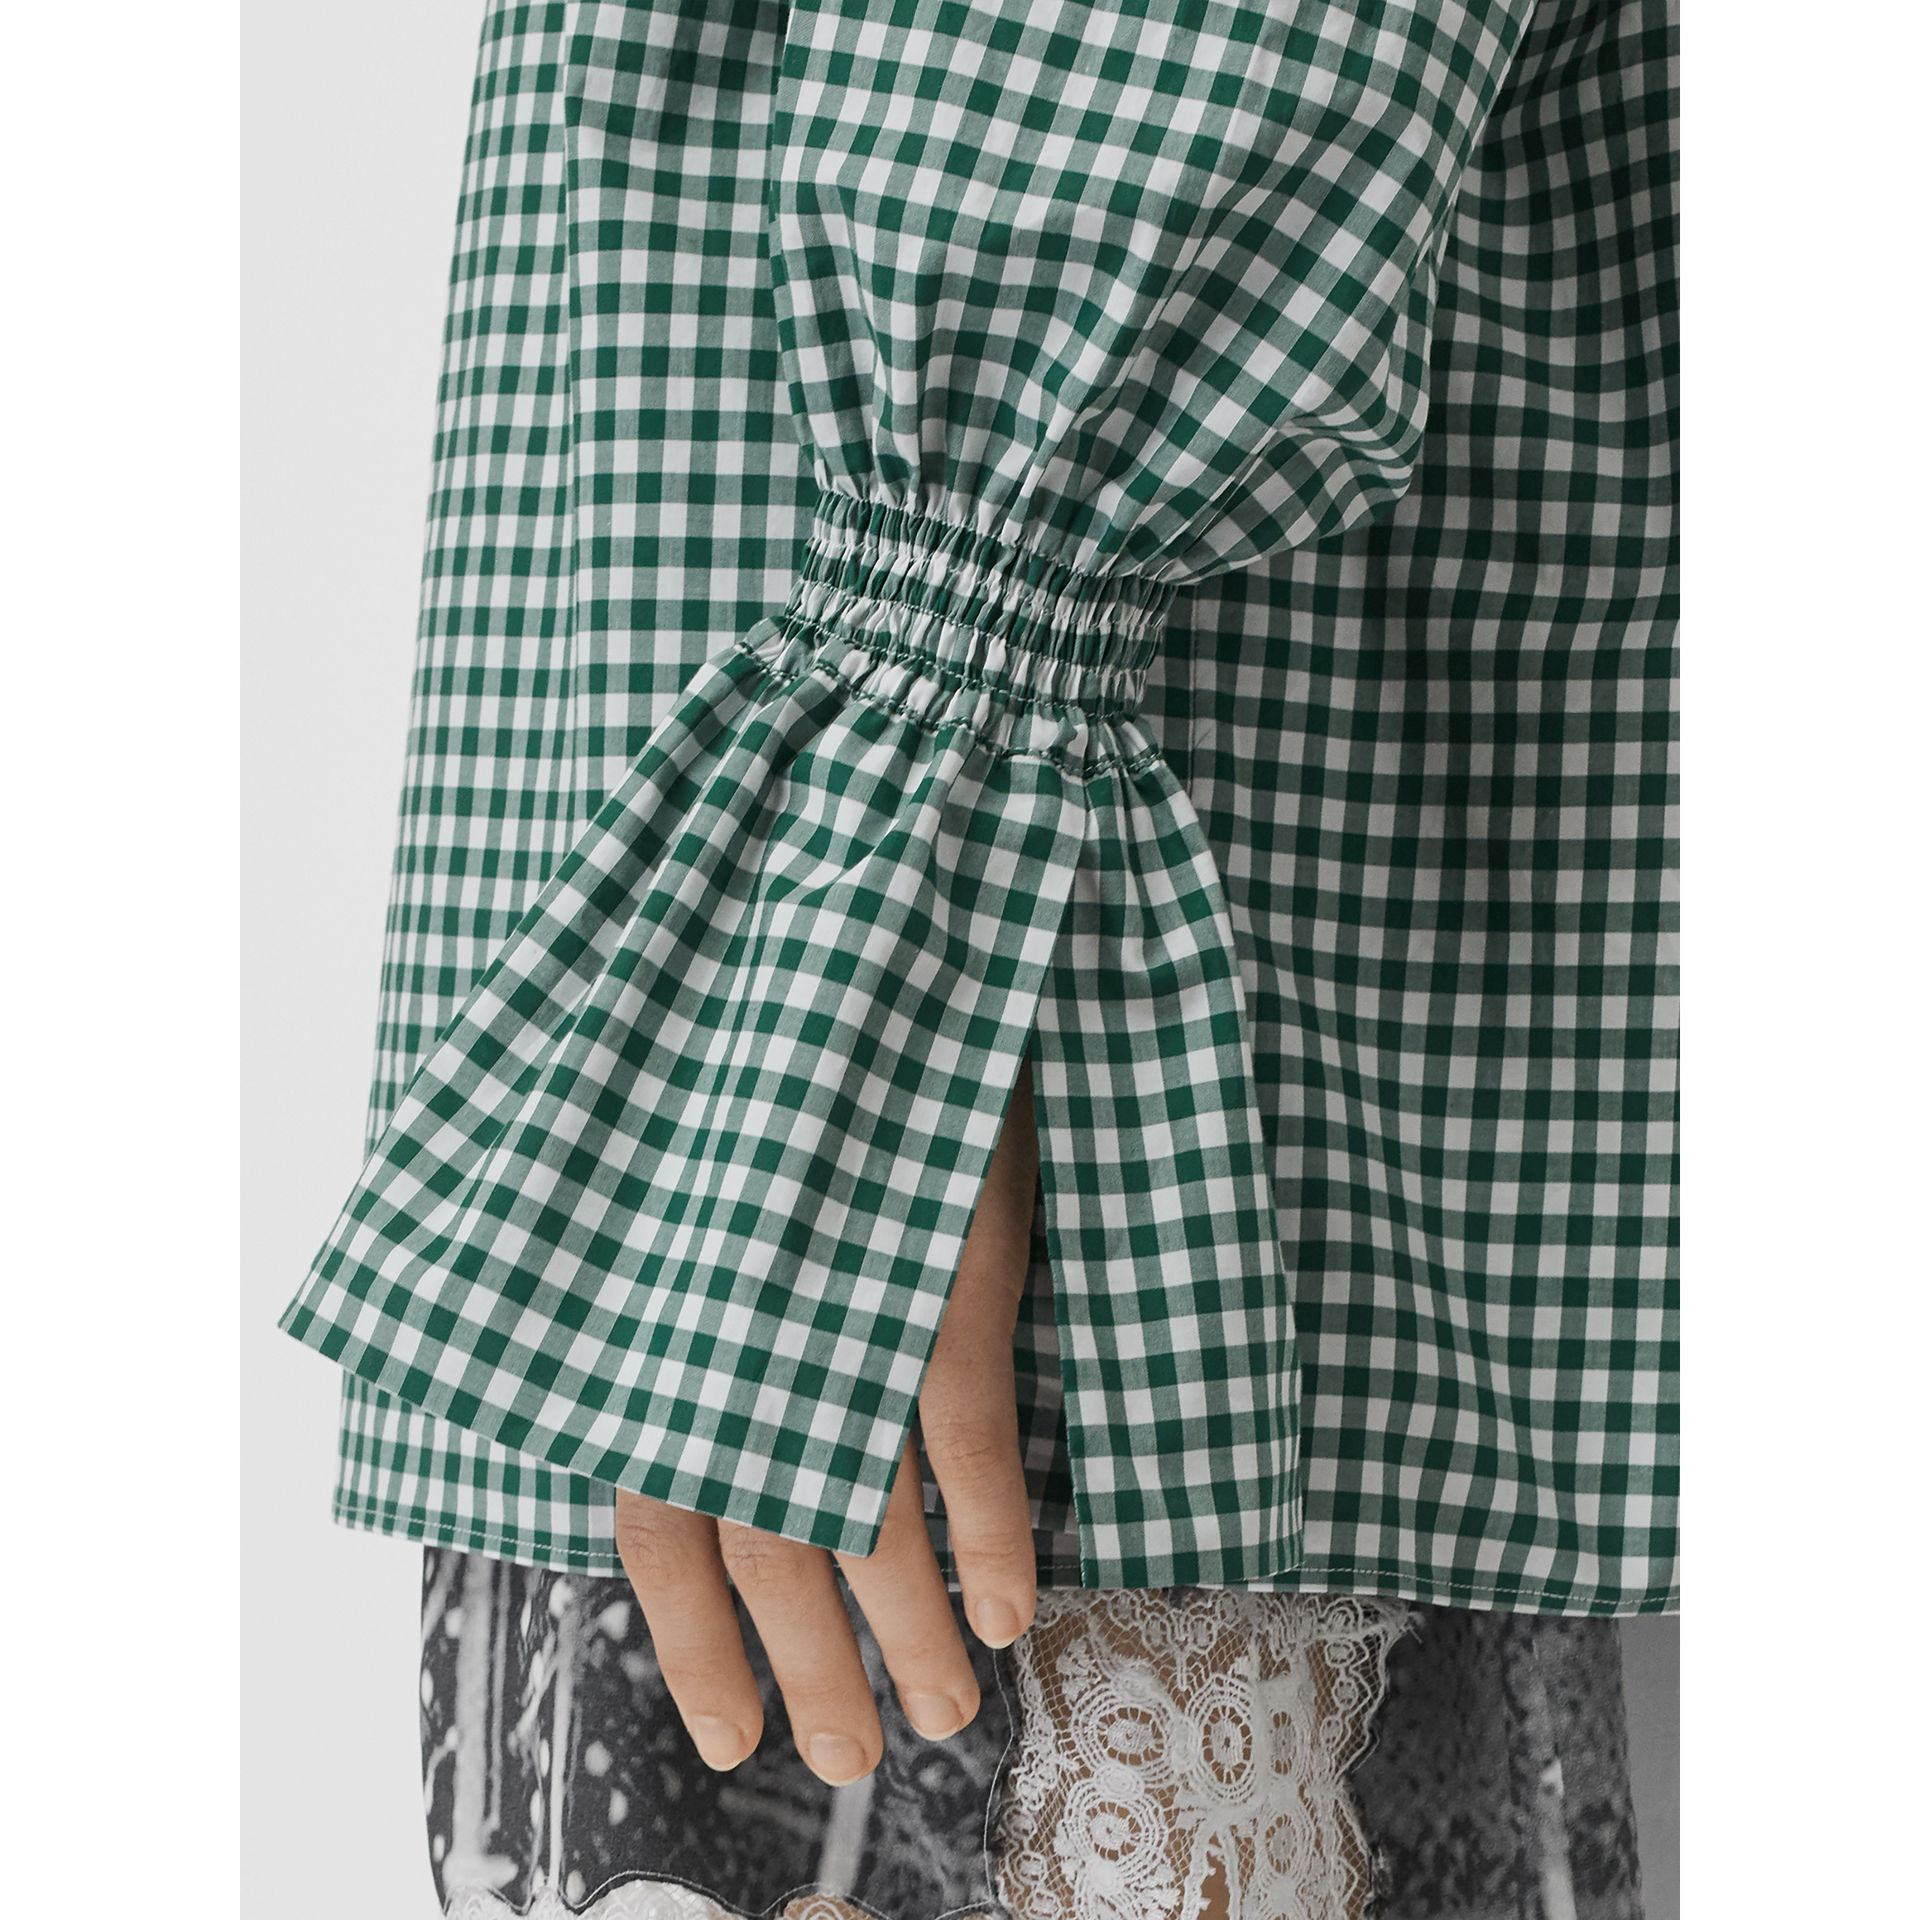 Gathered Sleeve Gingham Cotton Shirt in White/green - Women | Burberry - gallery image 1